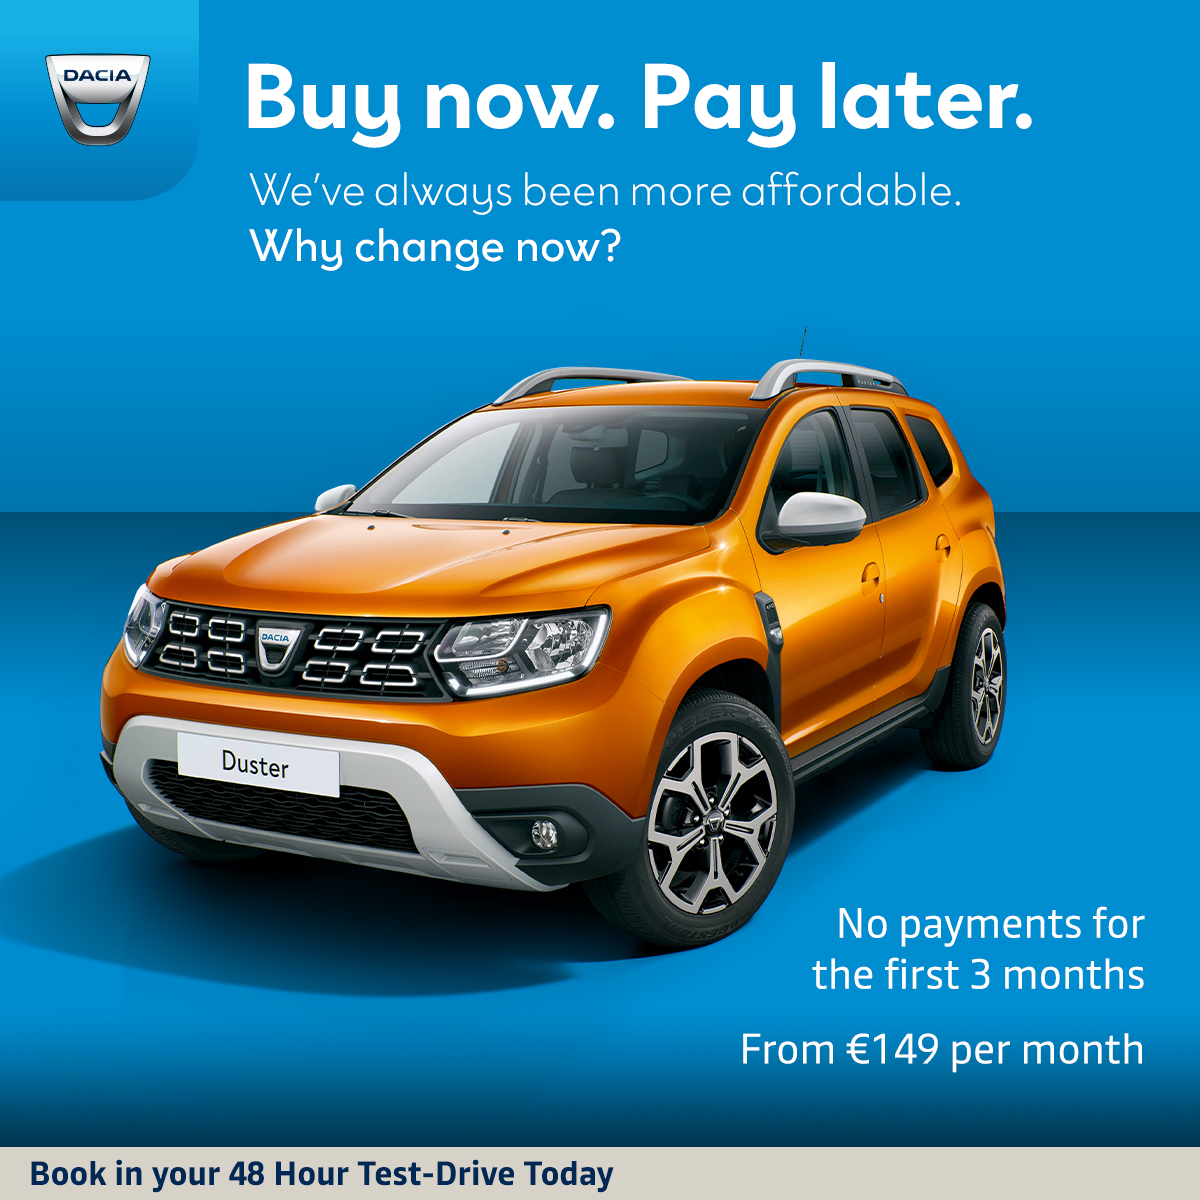 No payments on your Dacia Duster for the first 3 months with the Buy Now. Pay Later offer. 48-hour test drives now available. https://t.co/StEdwpGADr